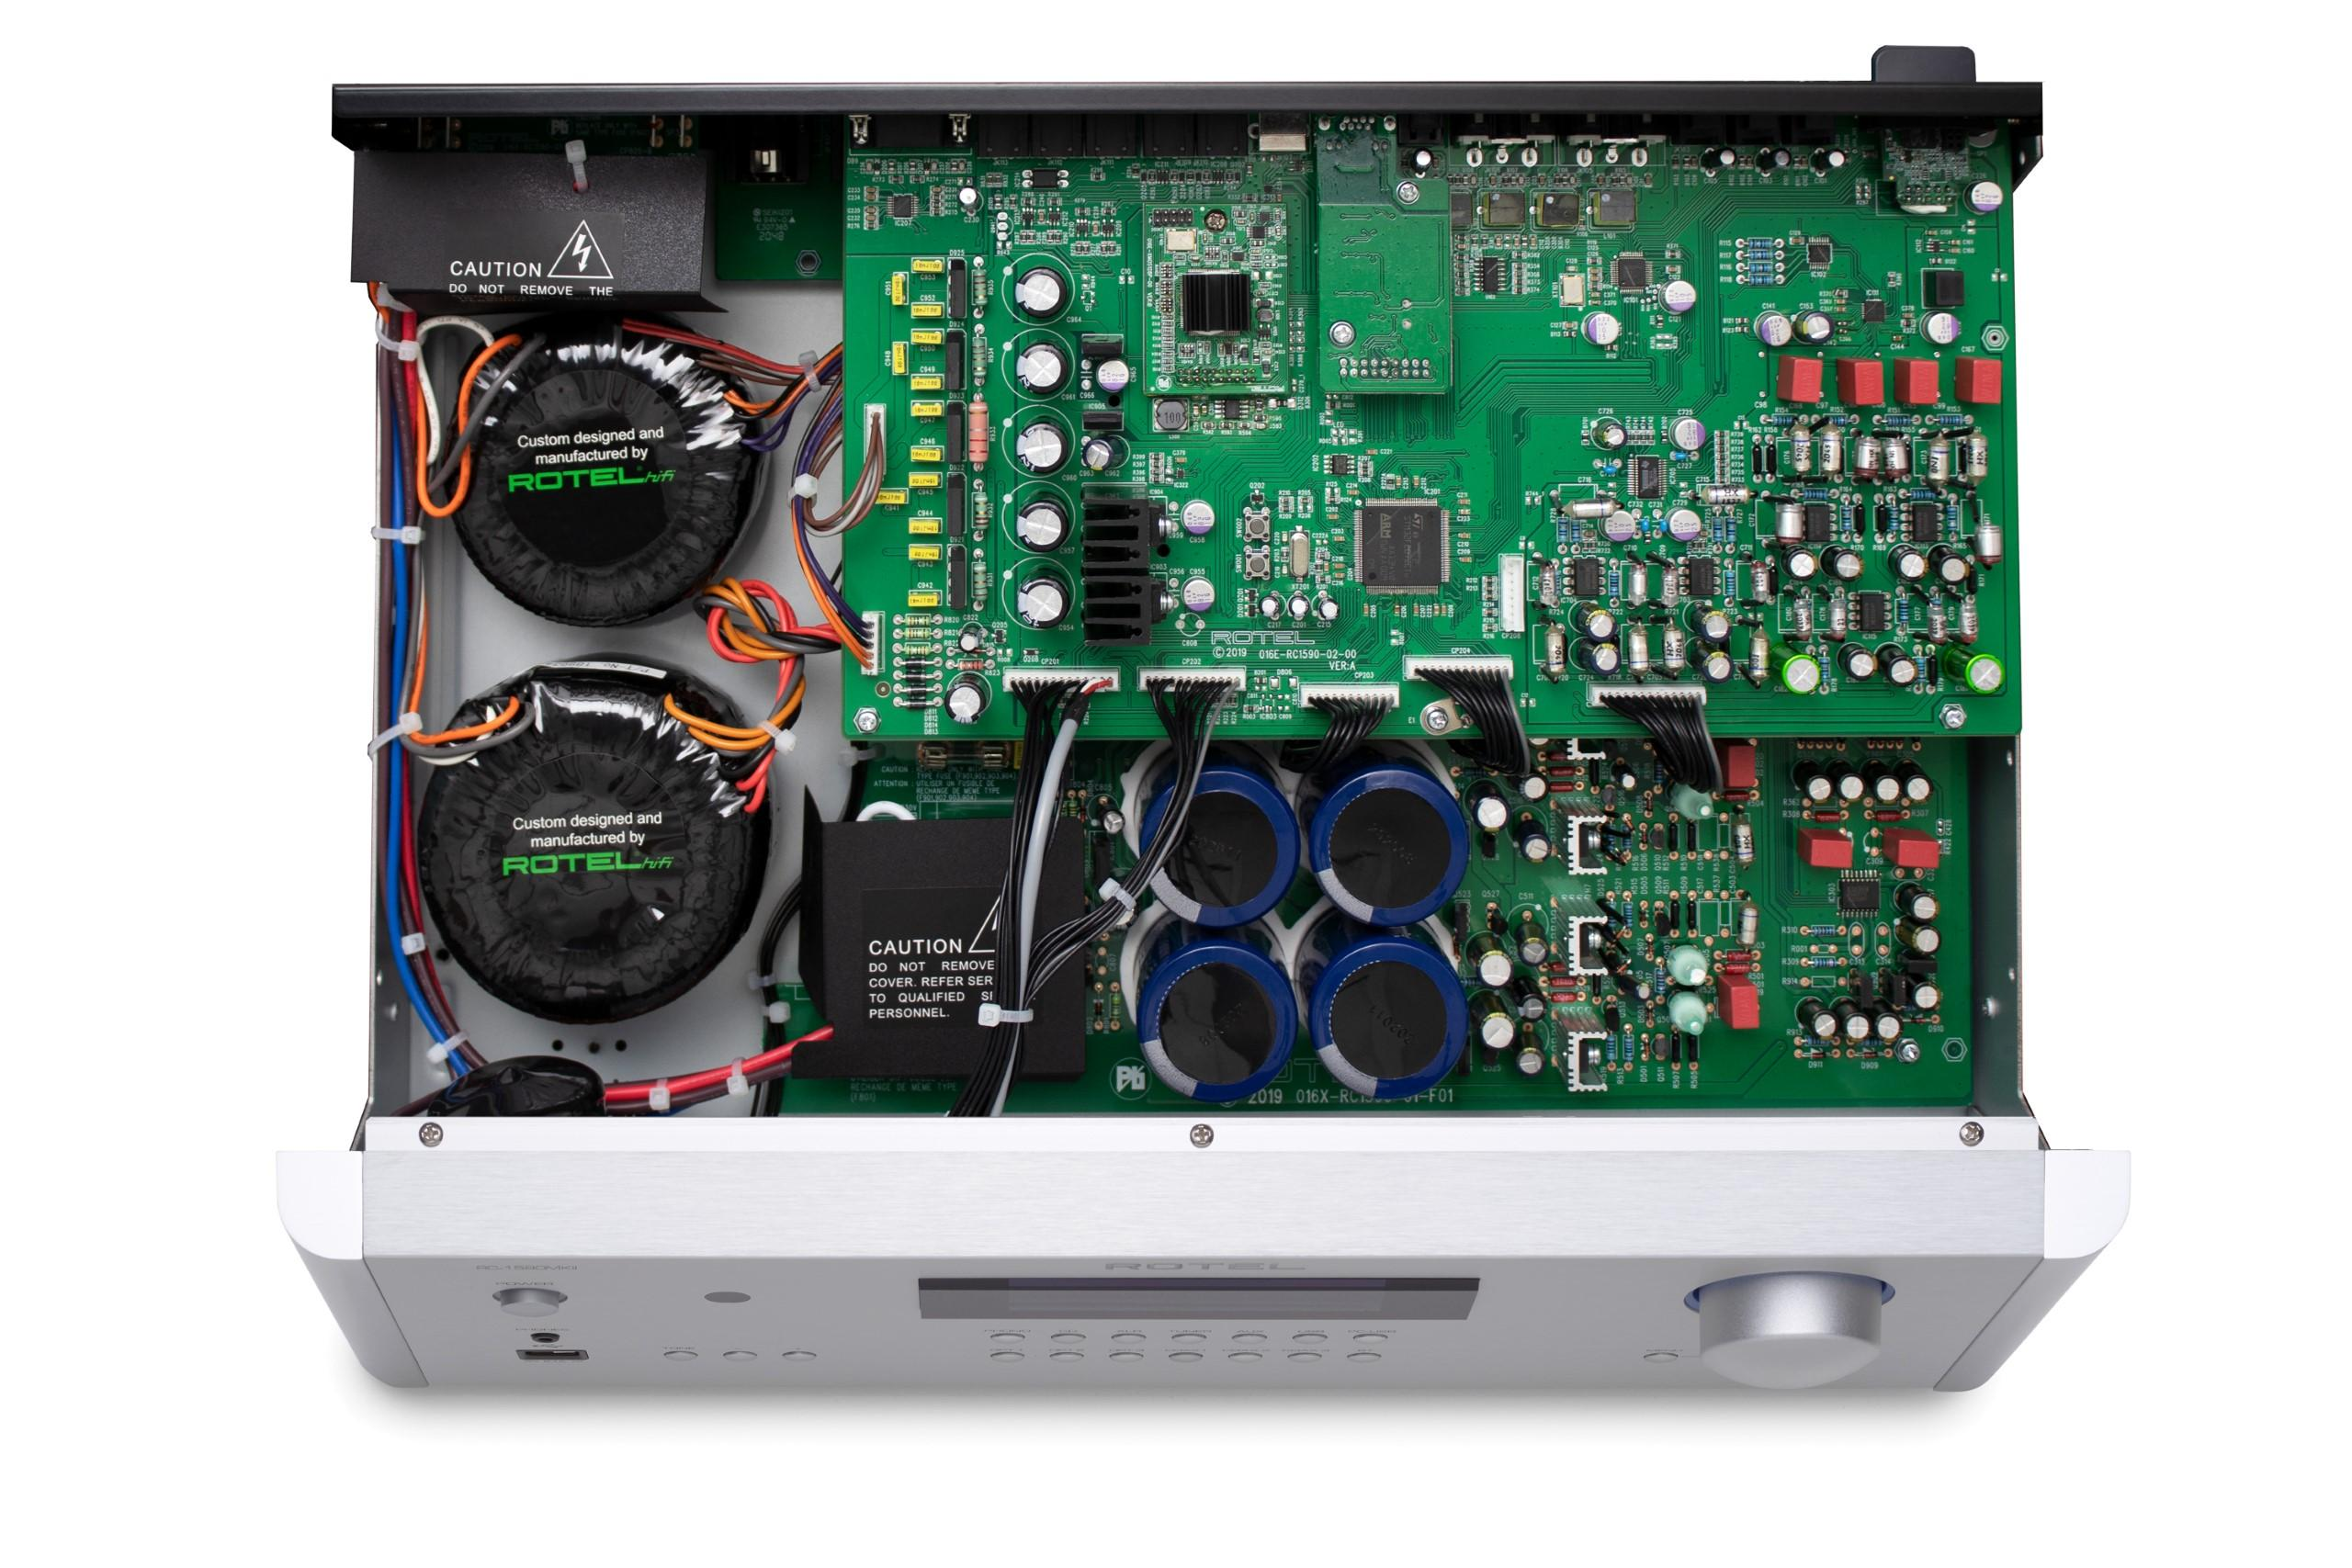 Rotel's latest pre-amplifiers are excellent performers jam-packed with inputs and solid engineering.